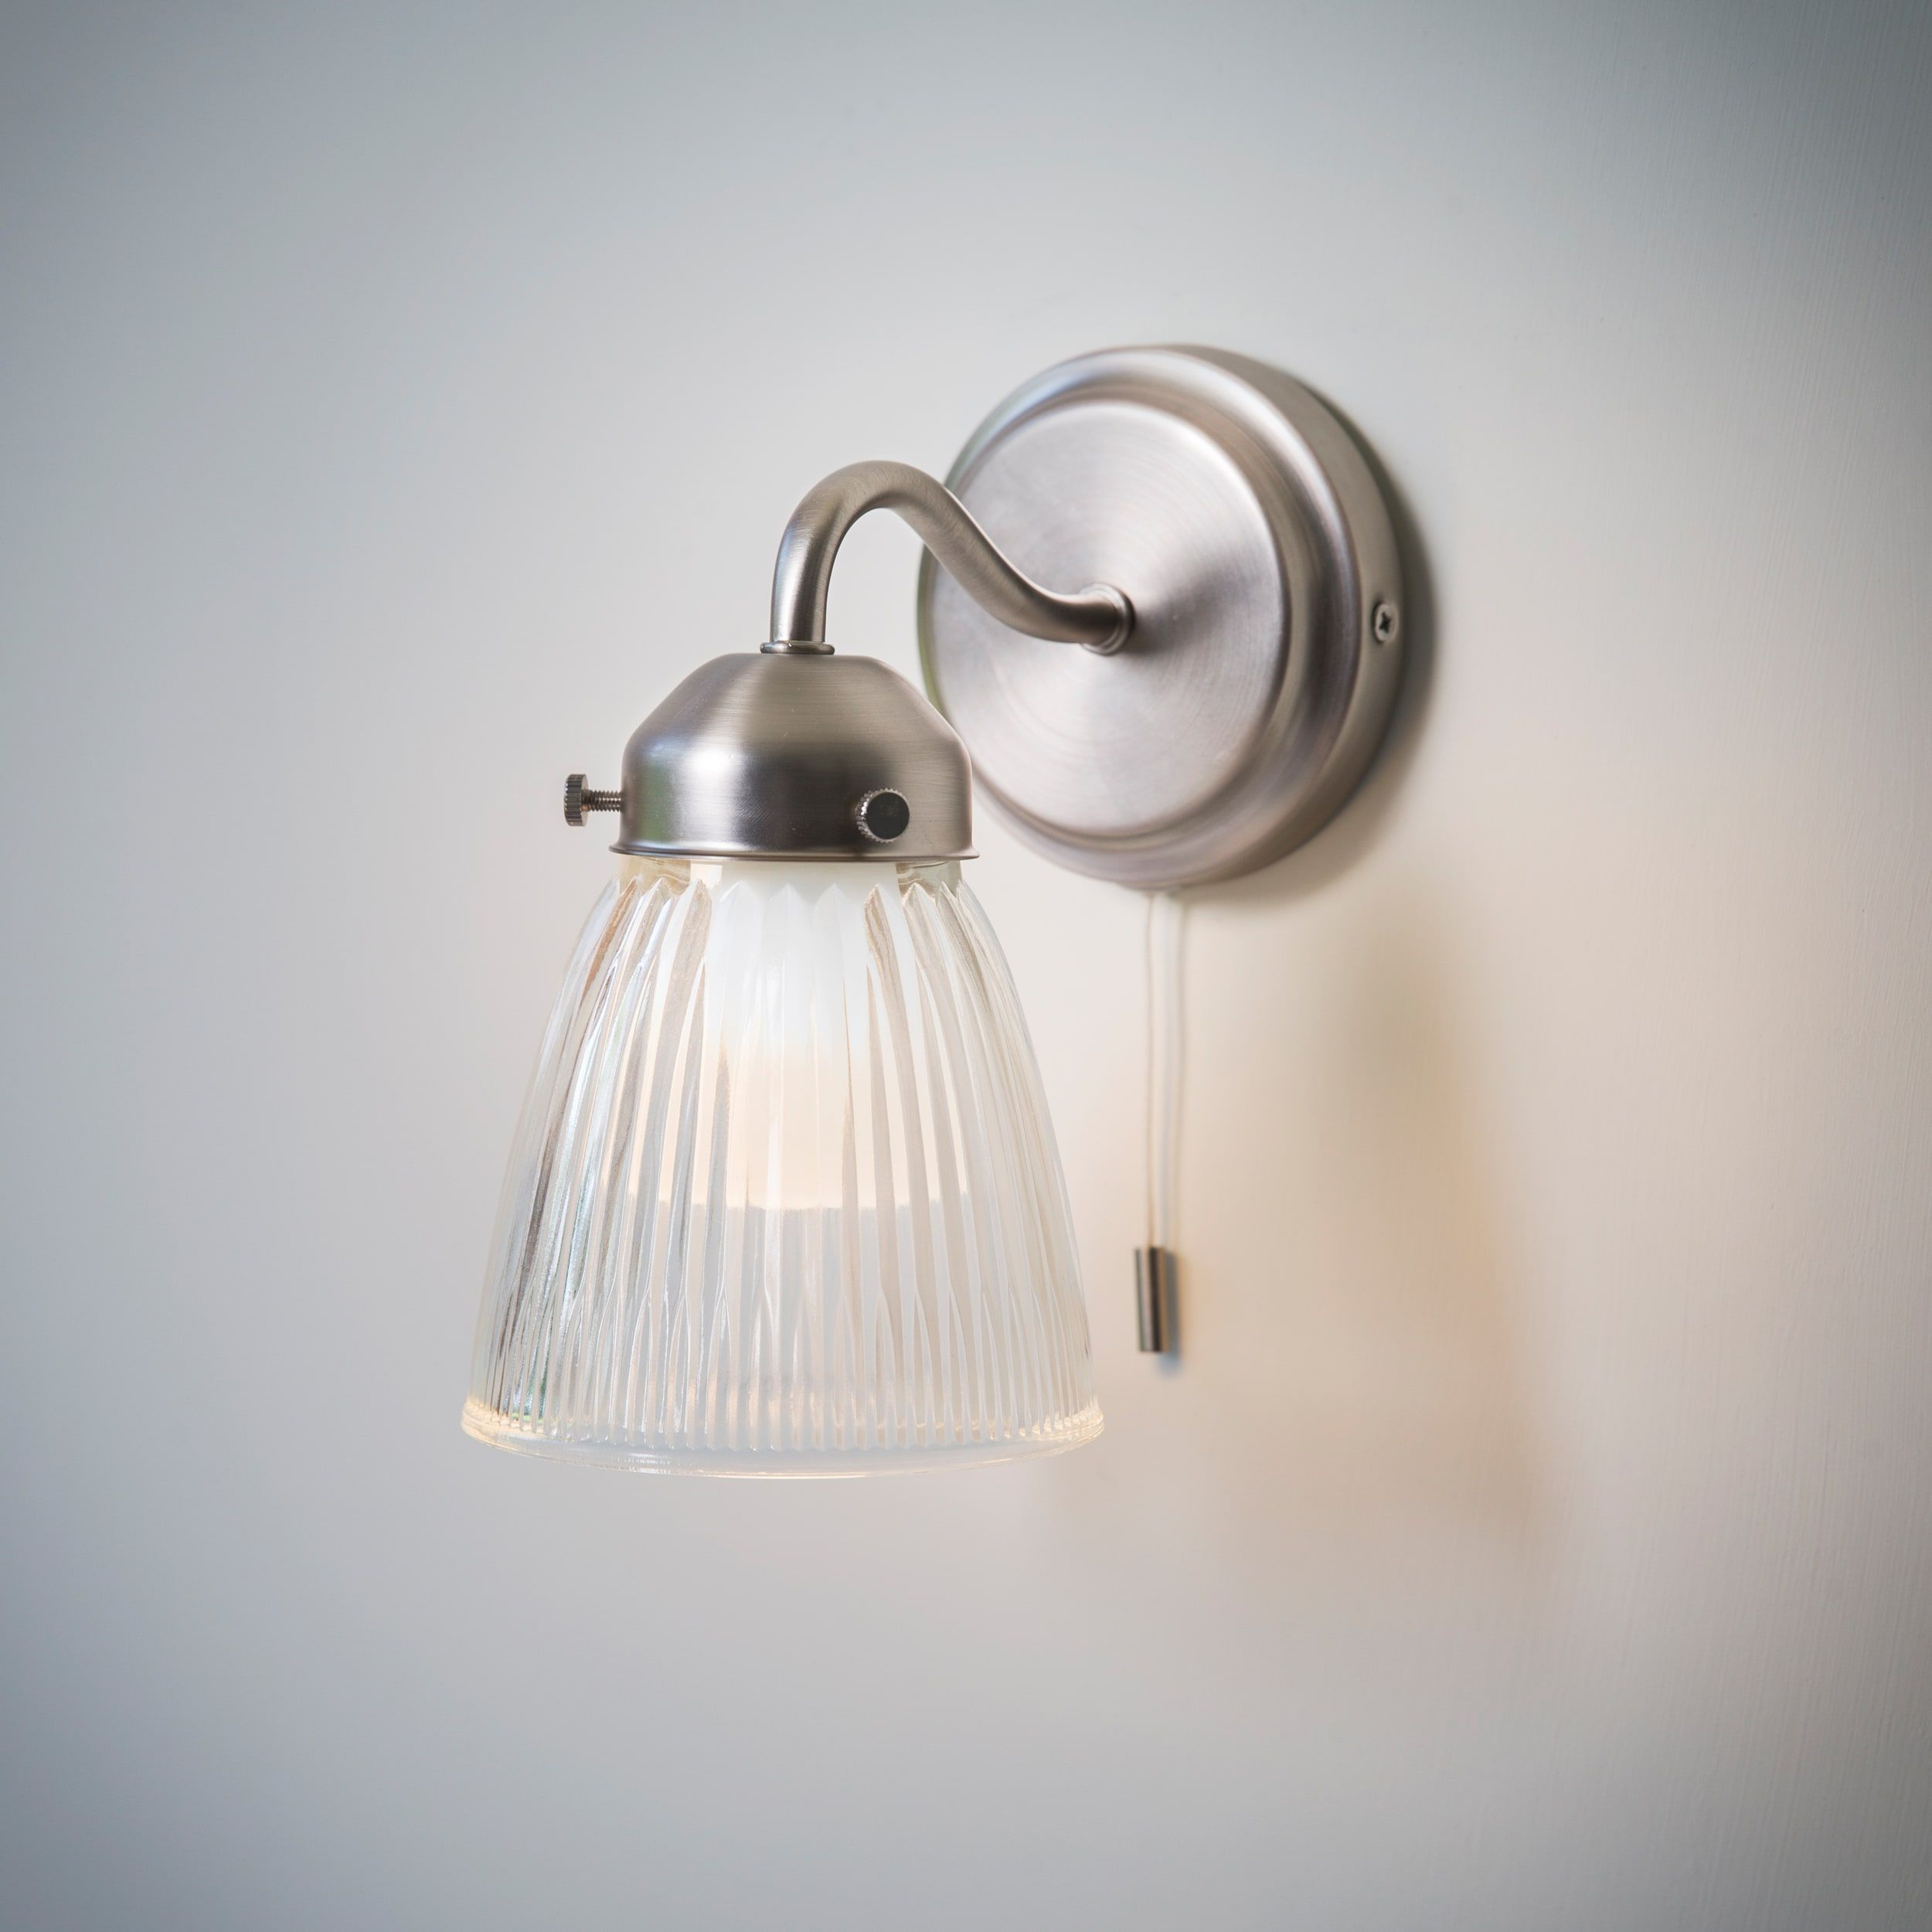 Pimlico Bathroom Wall Light Bathroom Wall Lights Glass Bathroom Wall Lights